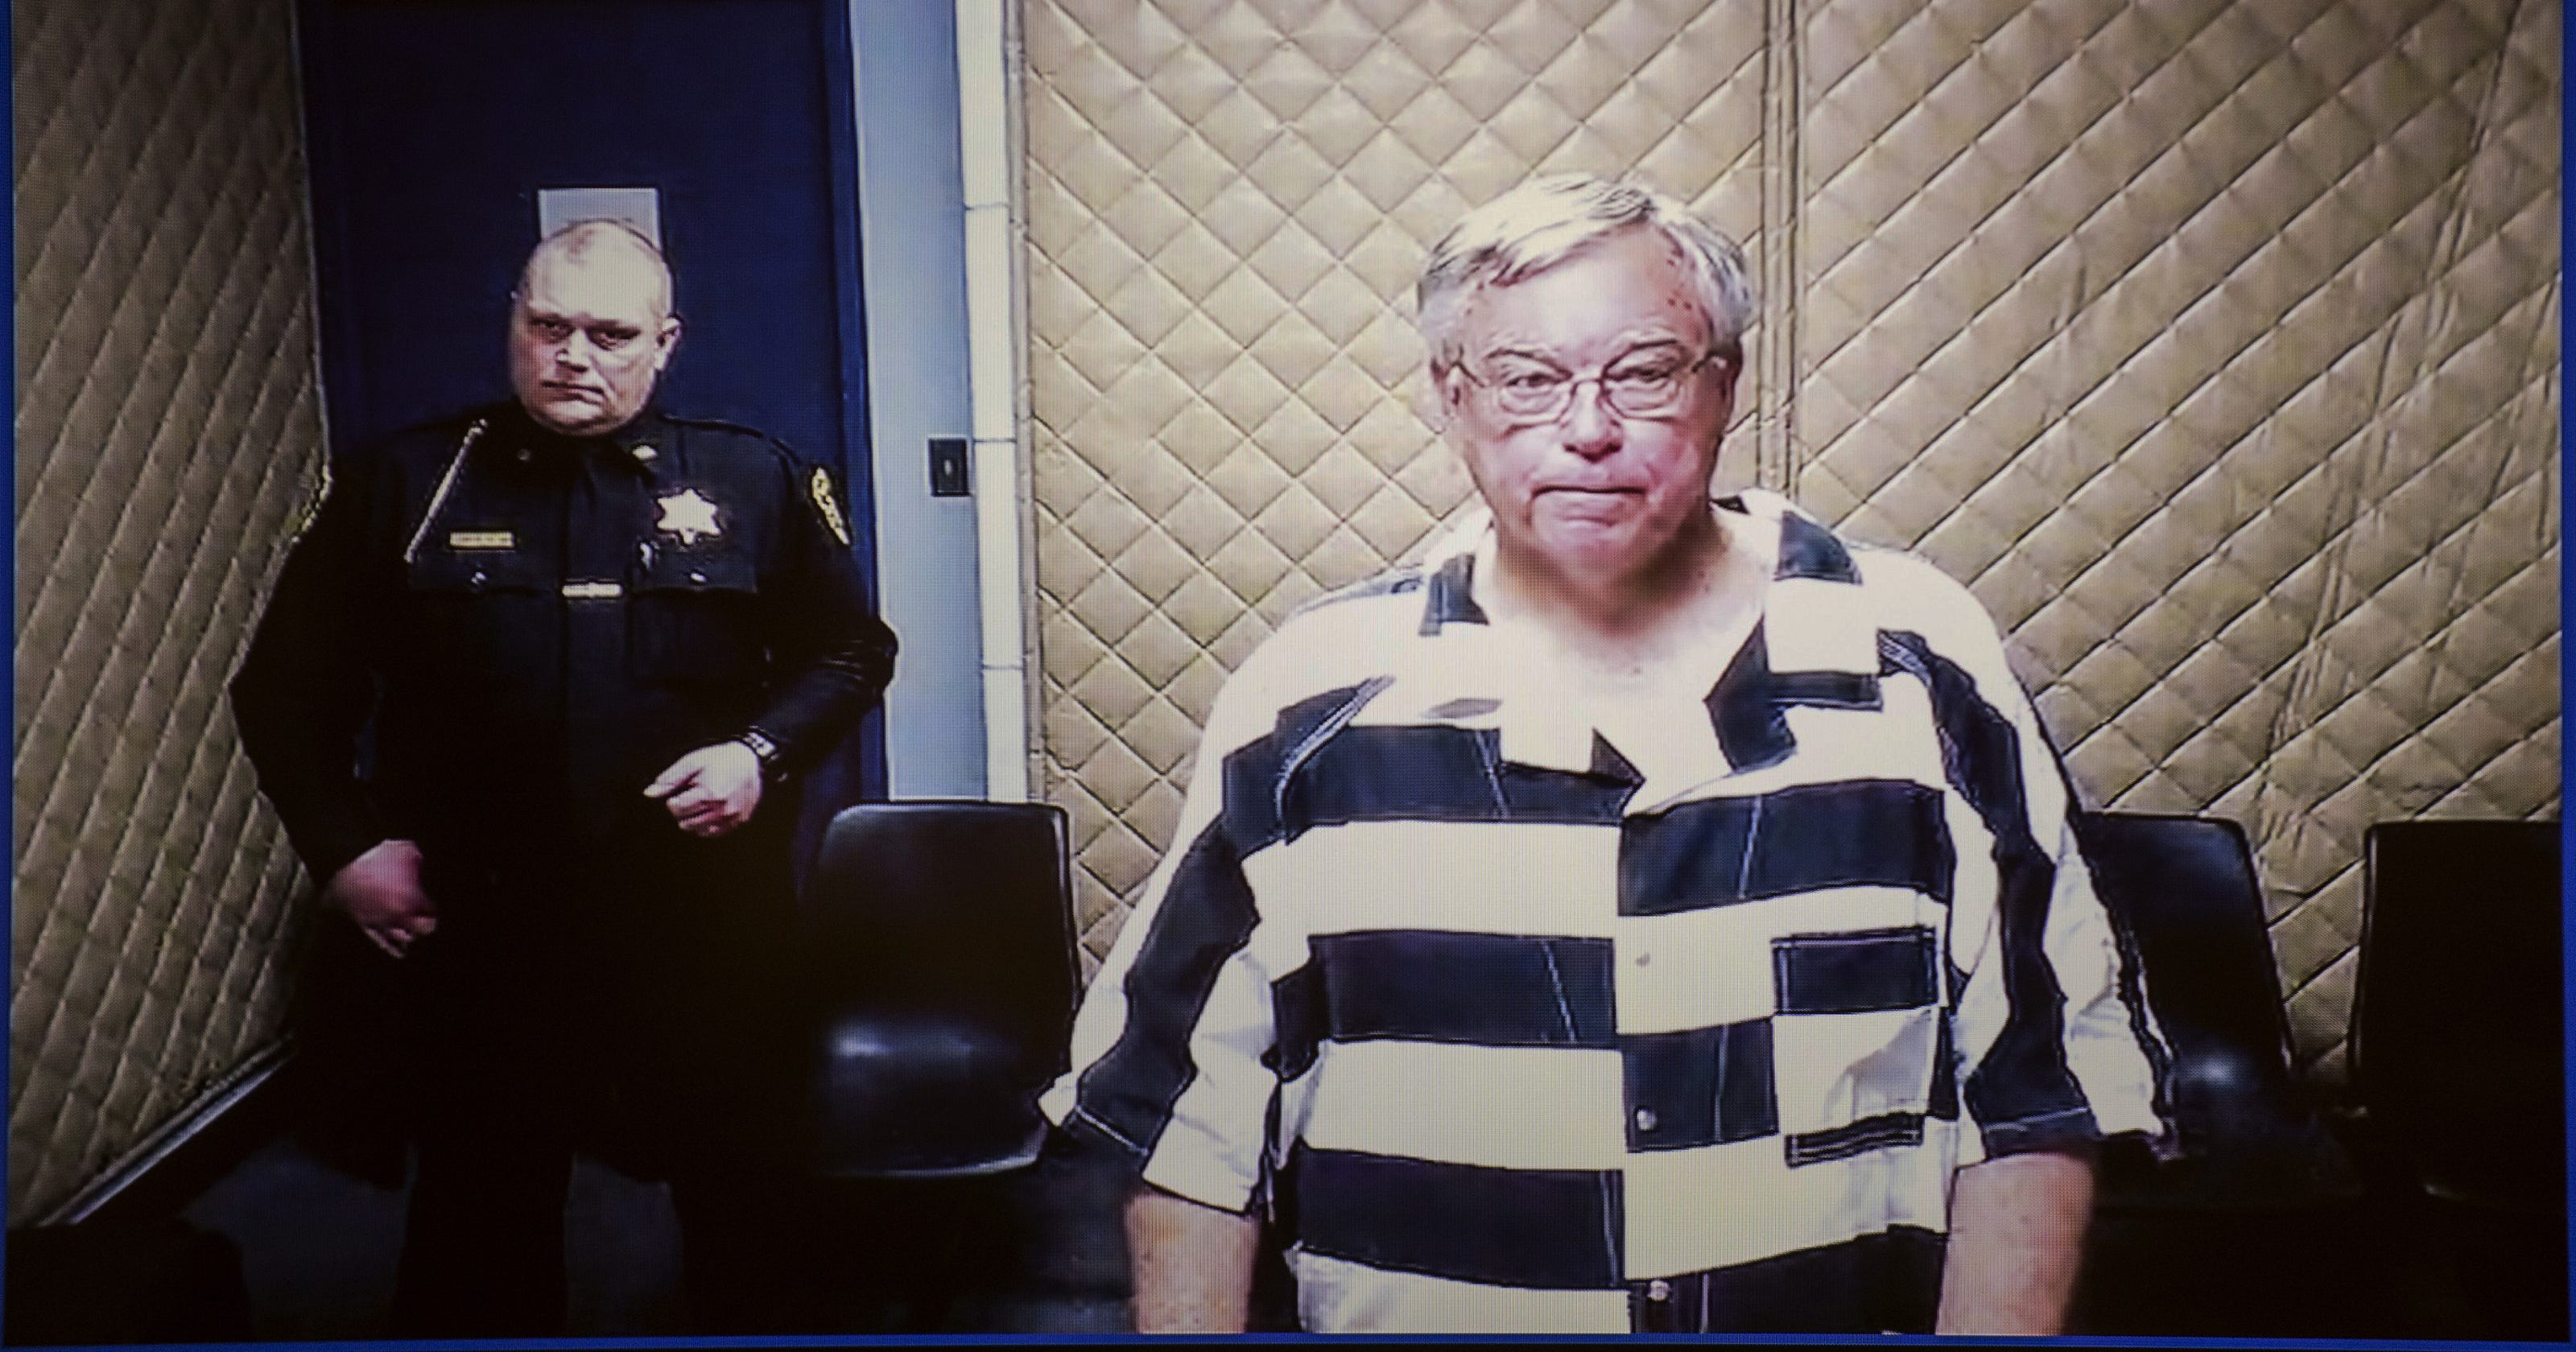 Saginaw-area priest backs out of plea agreement in sex case